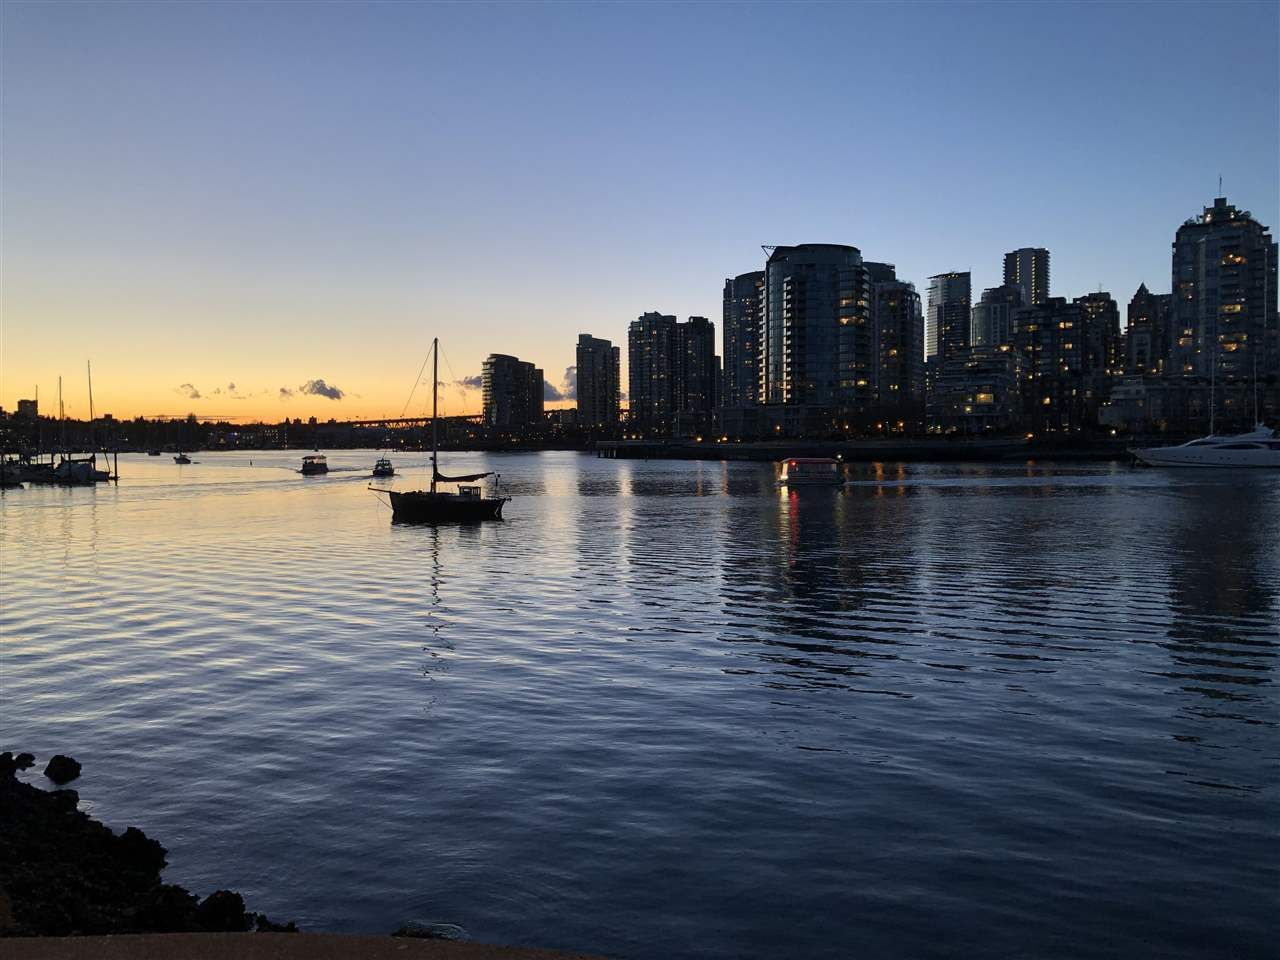 Main Photo: 101 1859 SPYGLASS PLACE in : False Creek Condo for sale (Vancouver West)  : MLS®# R2540570